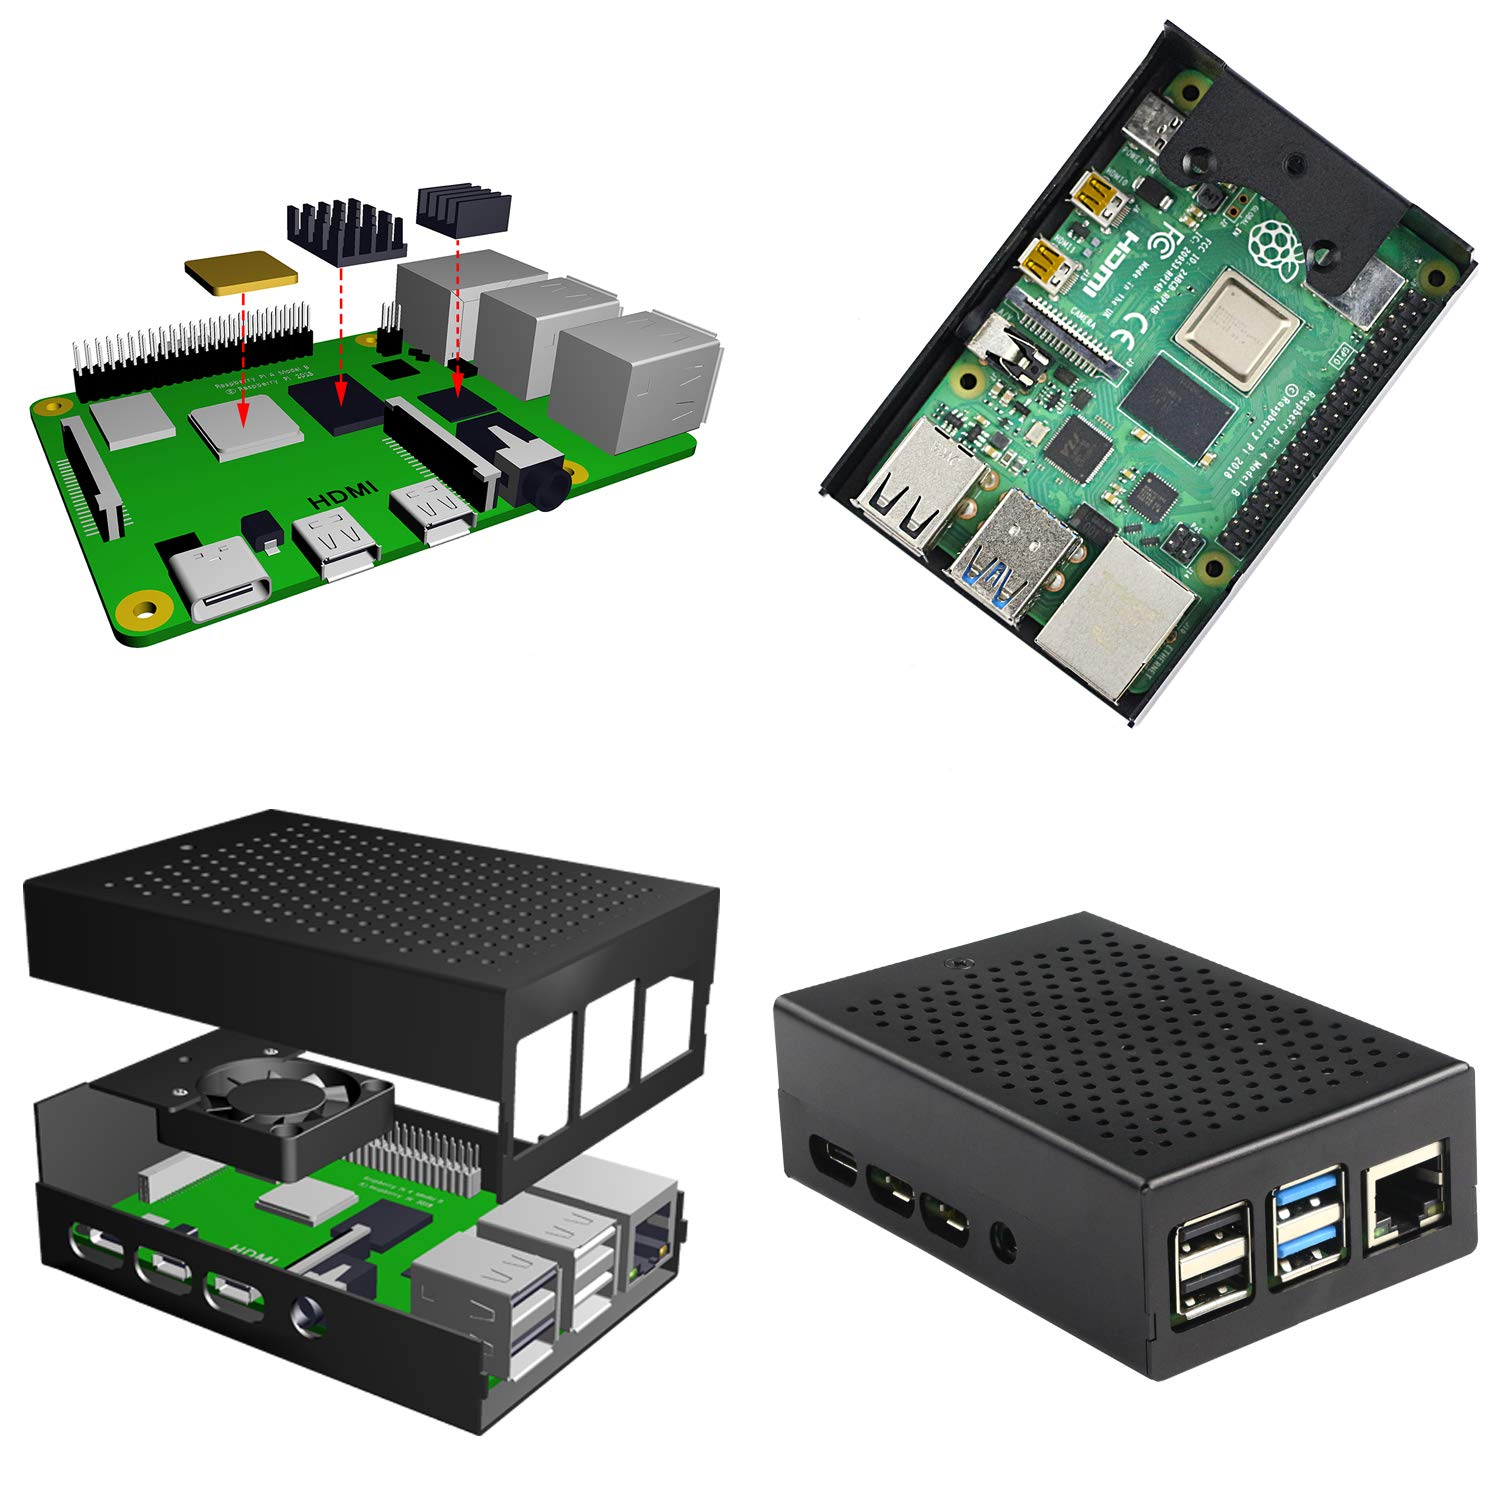 Amazon.com: Jun-Electron - Carcasa para Raspberry Pi 4 ...